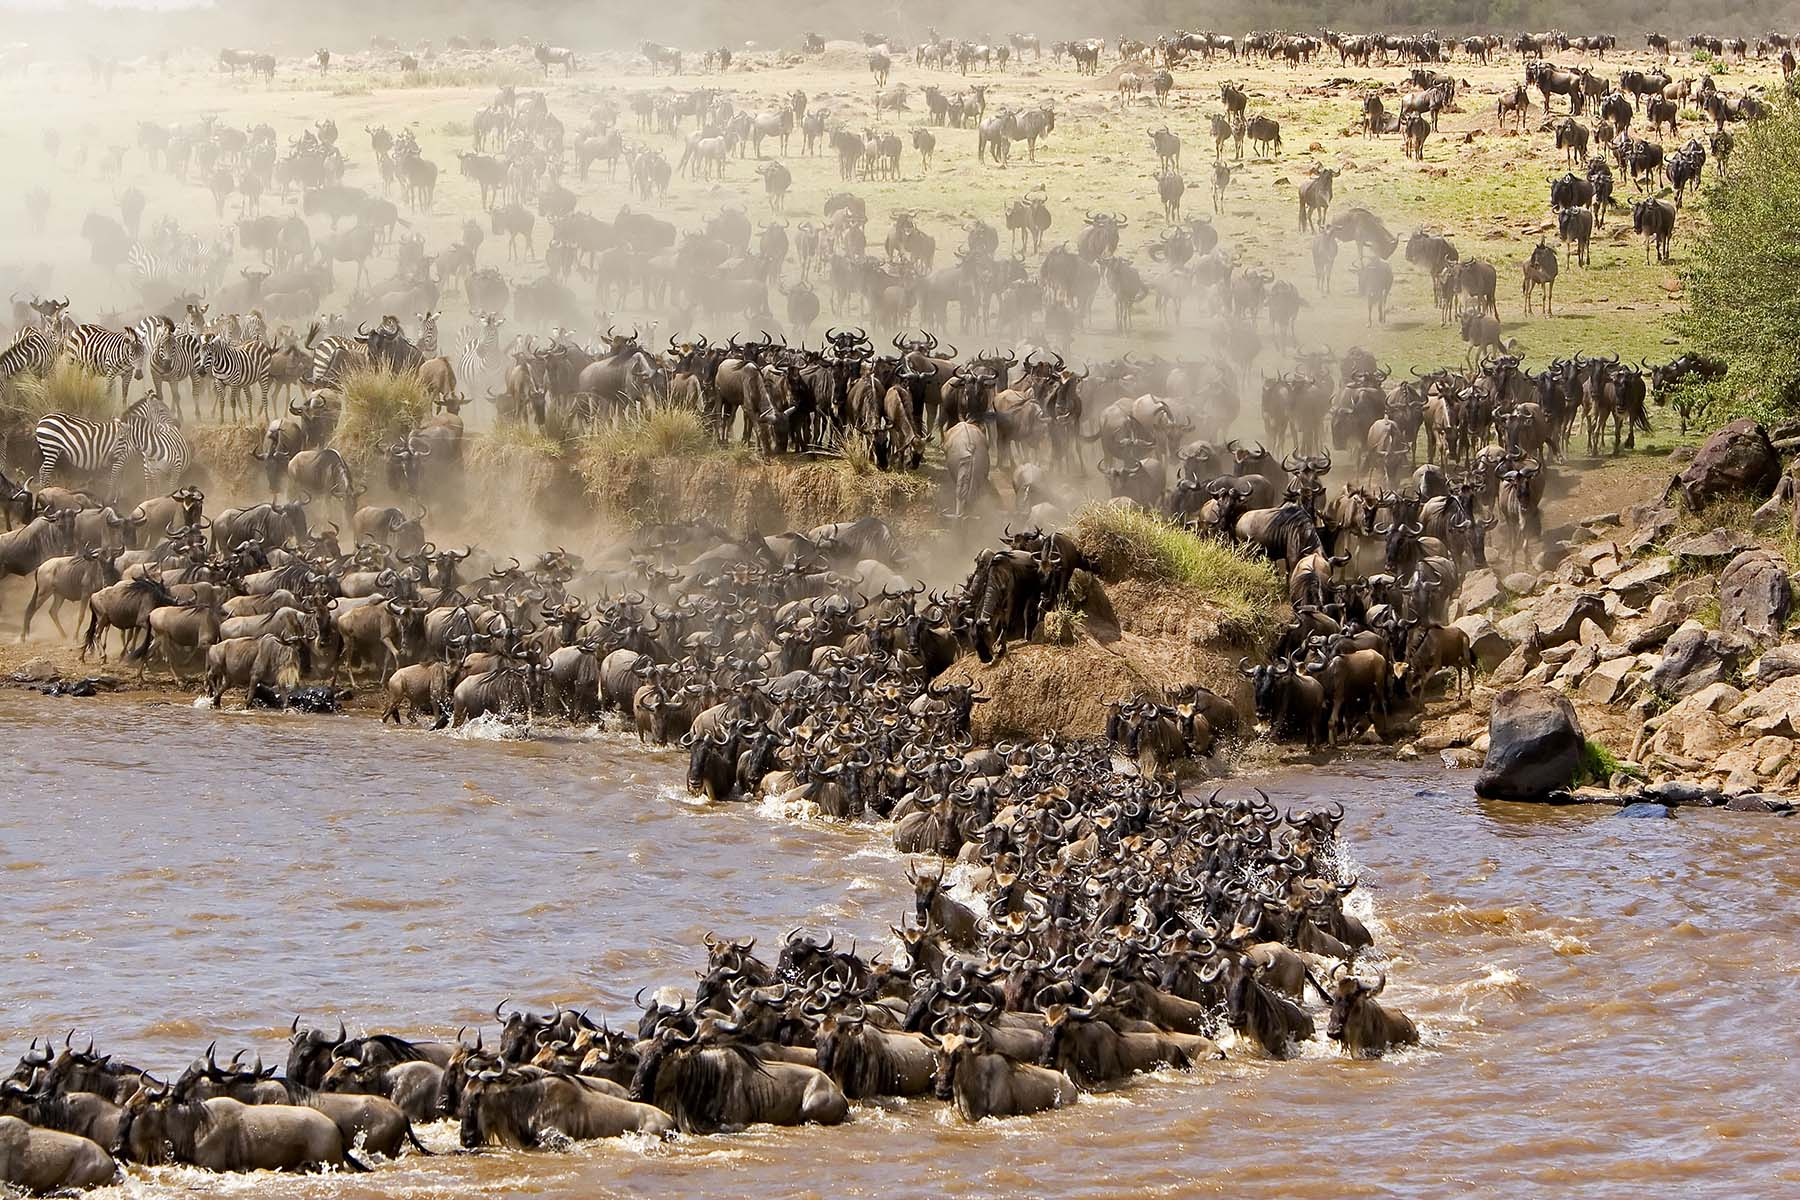 The great Serengeti wildebeest migration is the movement of vast numbers of the Serengeti's wildebeest,